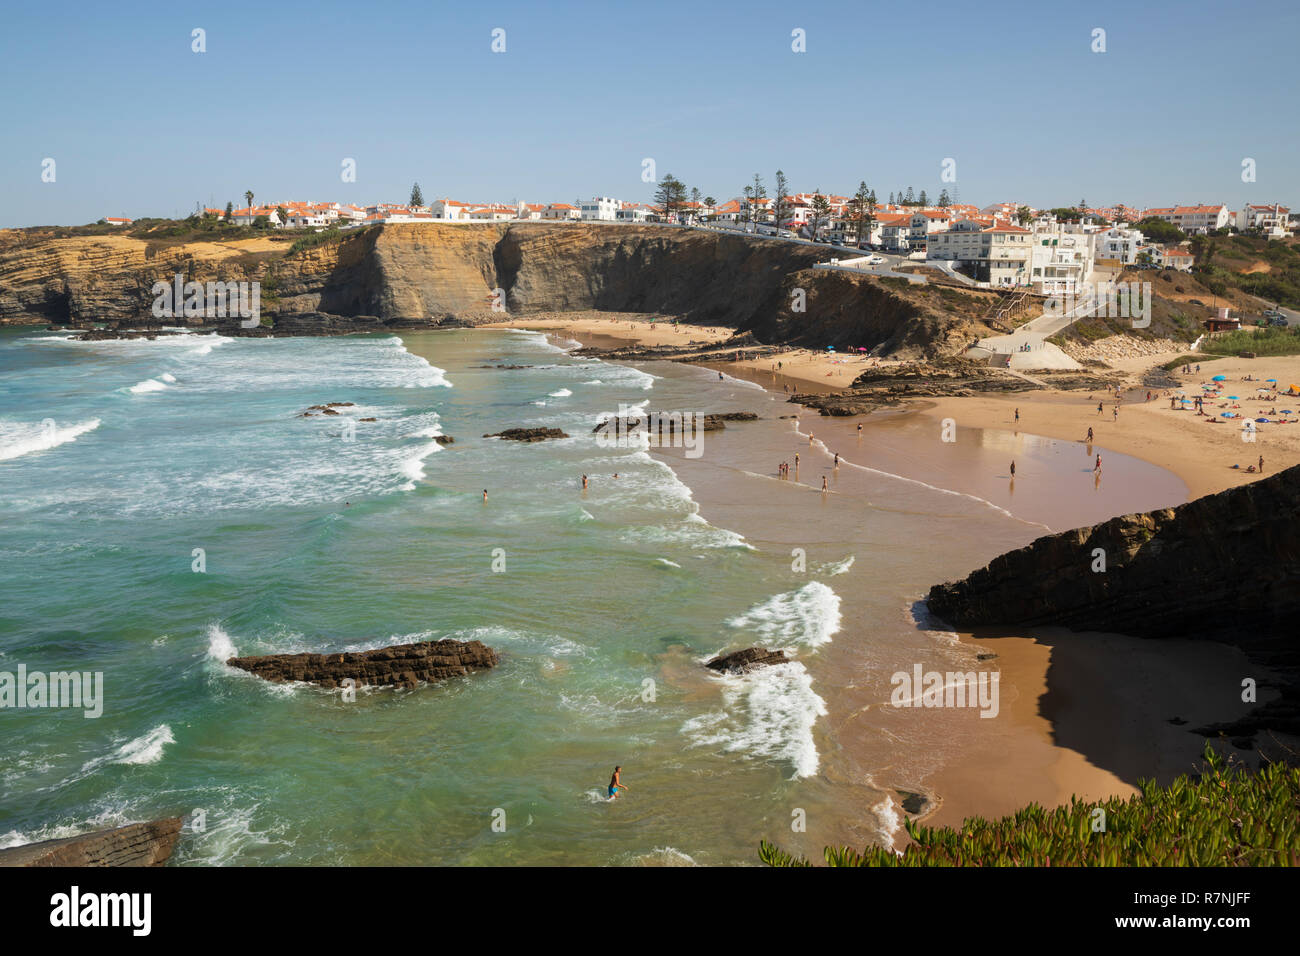 Whitewashed town on cliffs above beach and breaking waves of the Atlantic sea in noon sun, Zambujeira do Mar, Alentejo region, Portugal, Europe - Stock Image